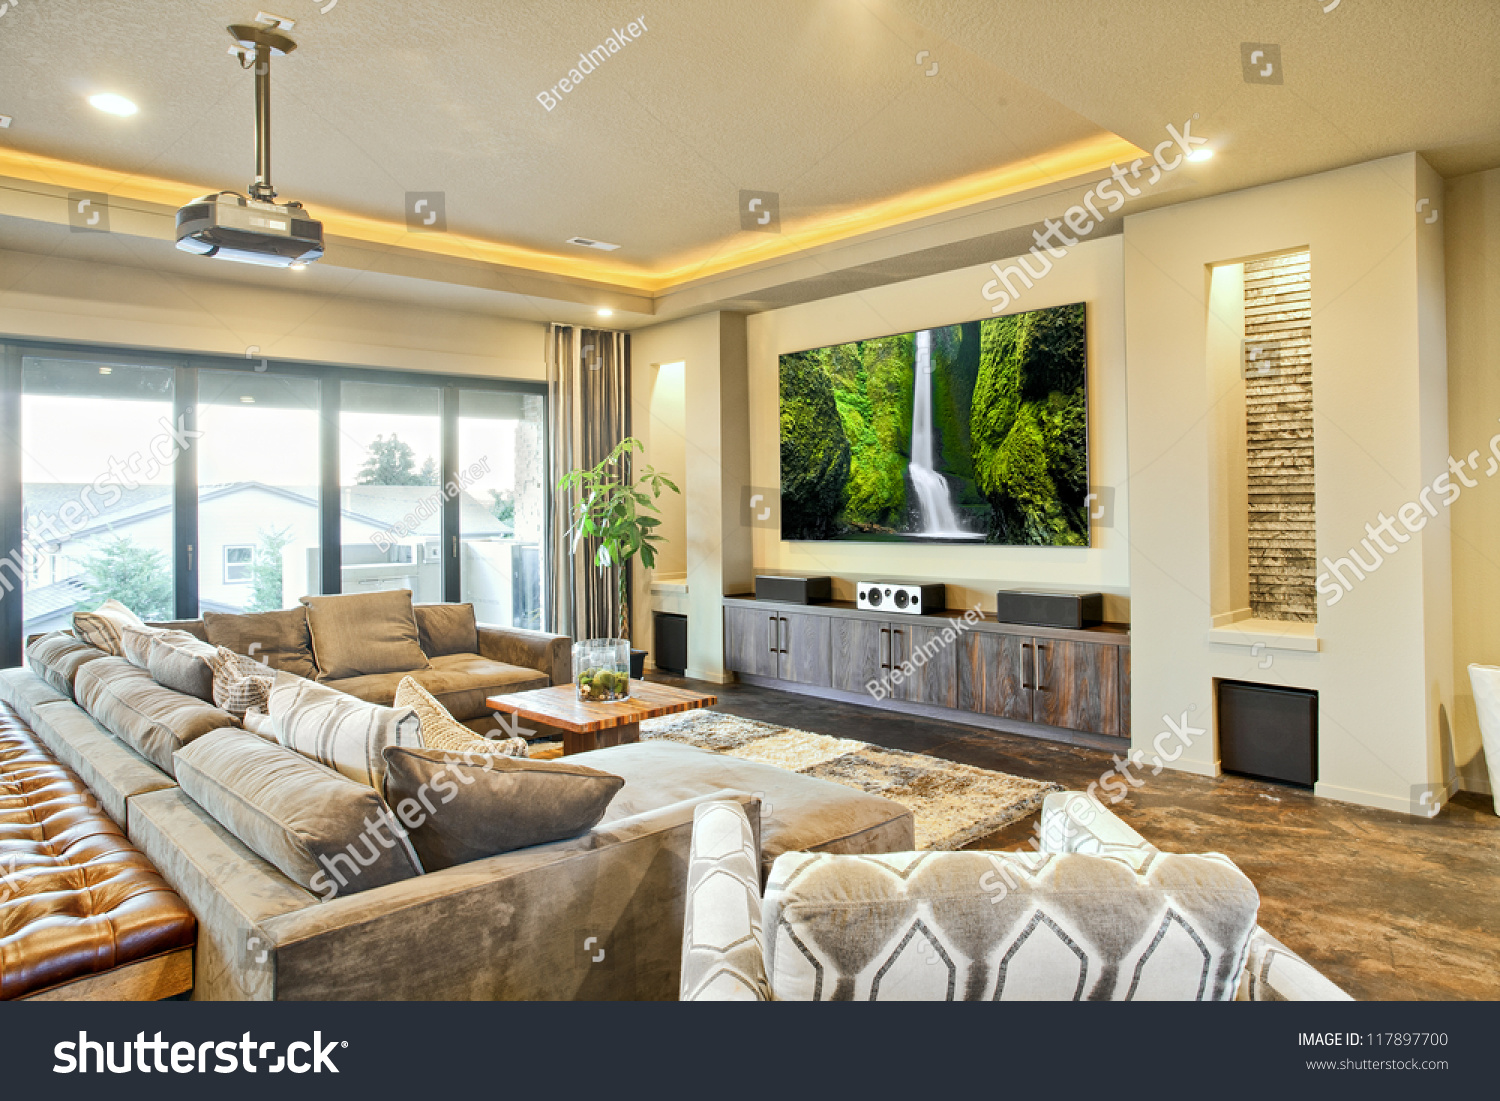 Entertainment Room Luxury Home Stock Photo 117897700